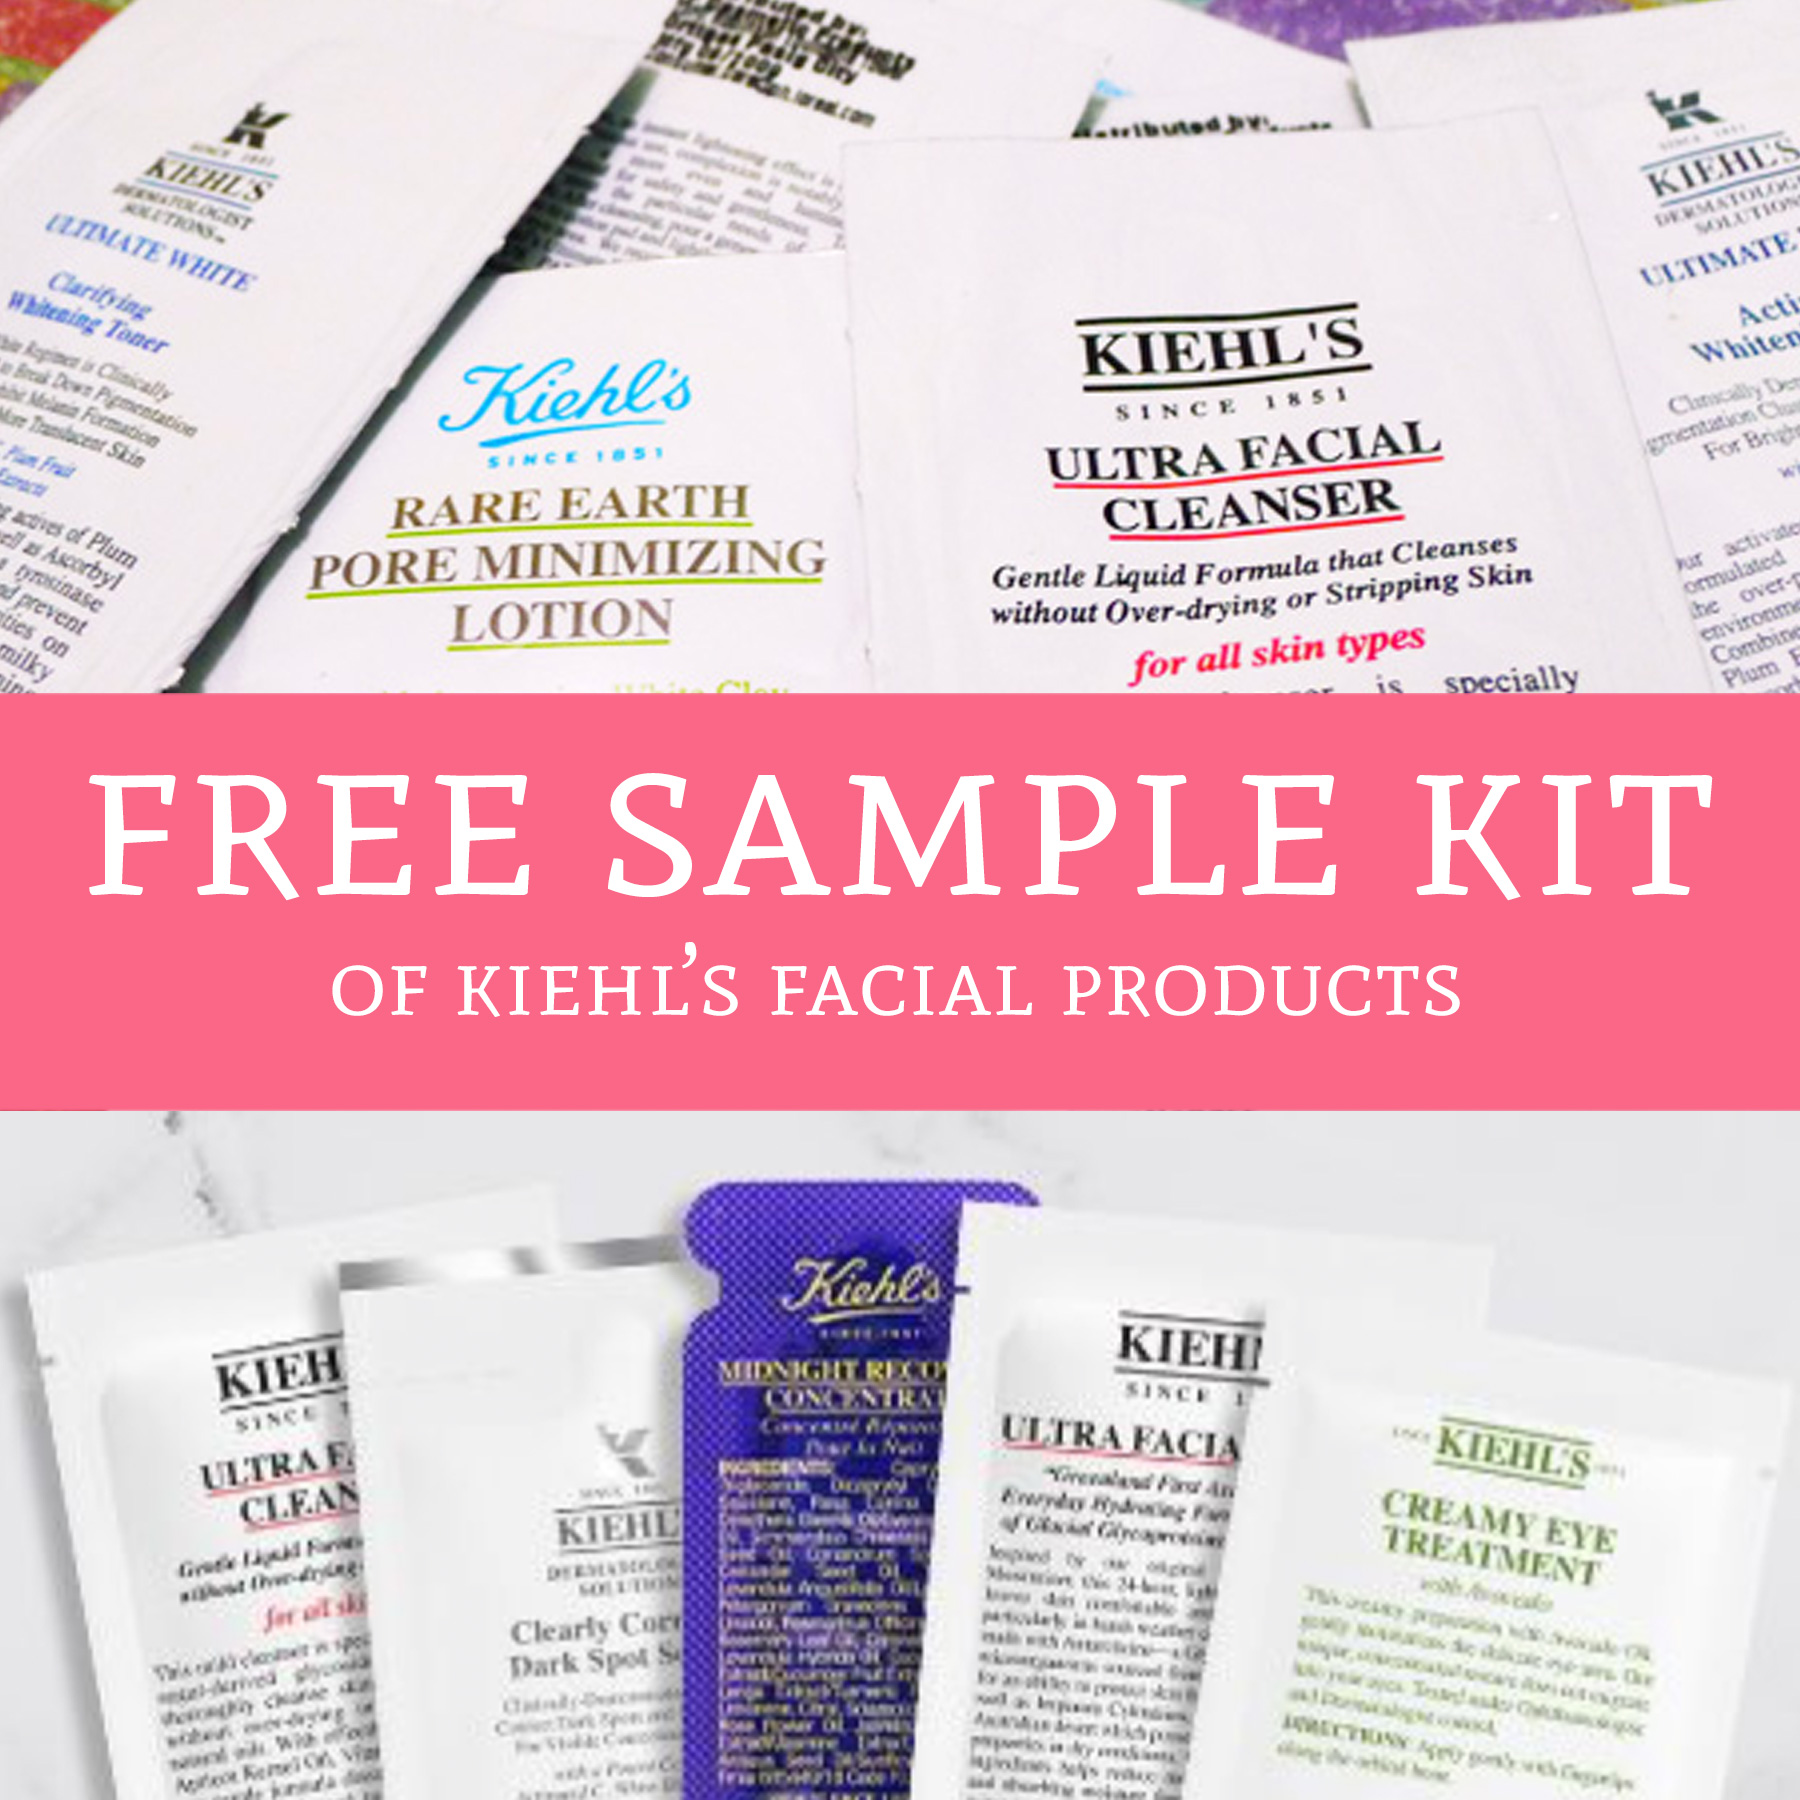 FREE Sample Kit of Kiehl's Facial Products - Deal Hunting Babe